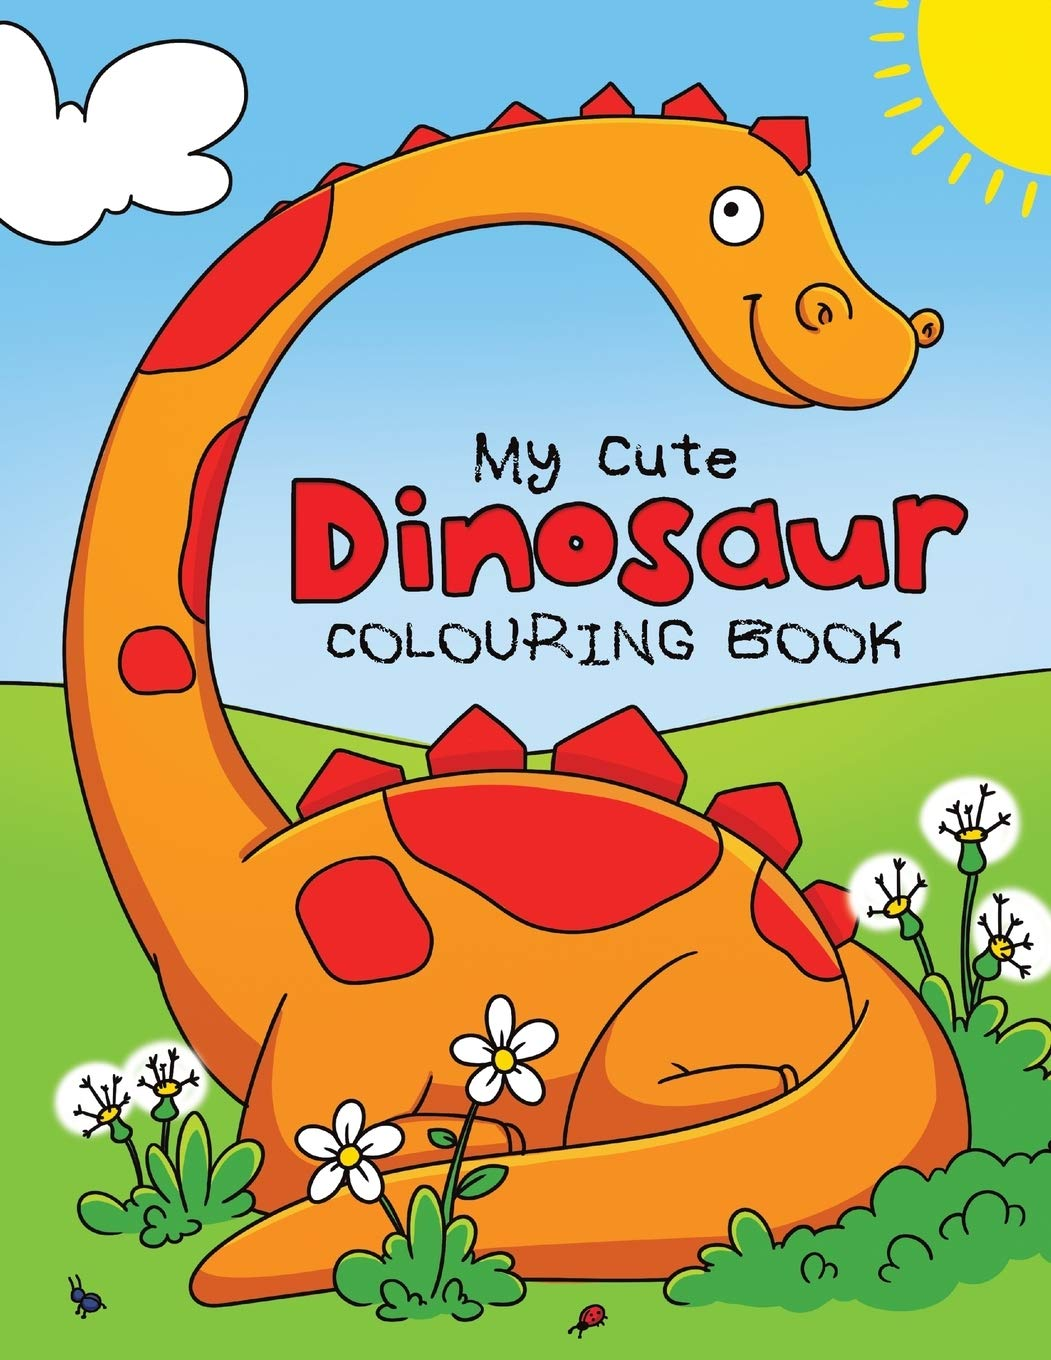 My Cute Dinosaur Colouring Book For Toddlers Fun Children S Colouring Book For Boys Girls With 50 Adorable Dinosaur Pages For Toddlers Kids To Colour Amazon Co Uk Feel Happy Books Books